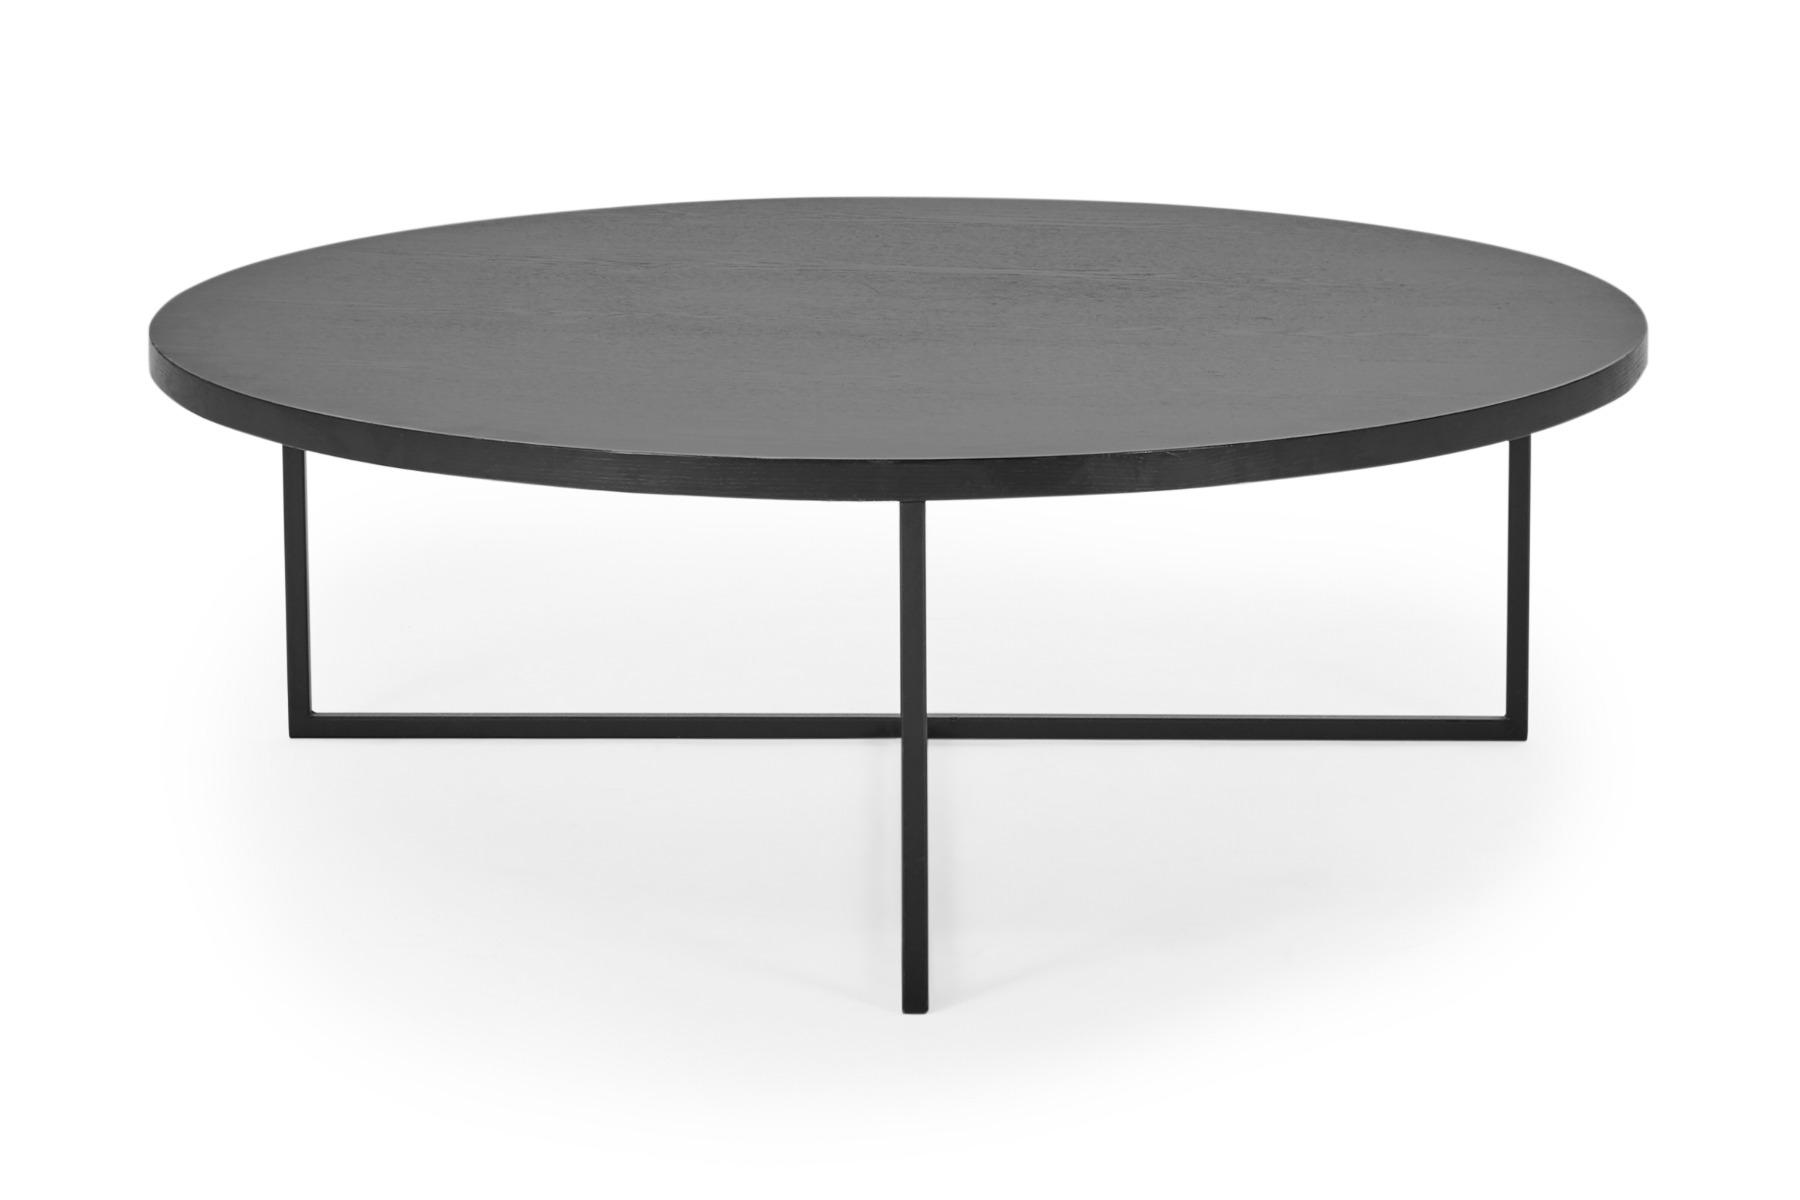 Turner Modern Coffee Table Black Table Top Black Ash Veneer by Lounge Lovers by Lounge Lovers, a Coffee Table for sale on Style Sourcebook